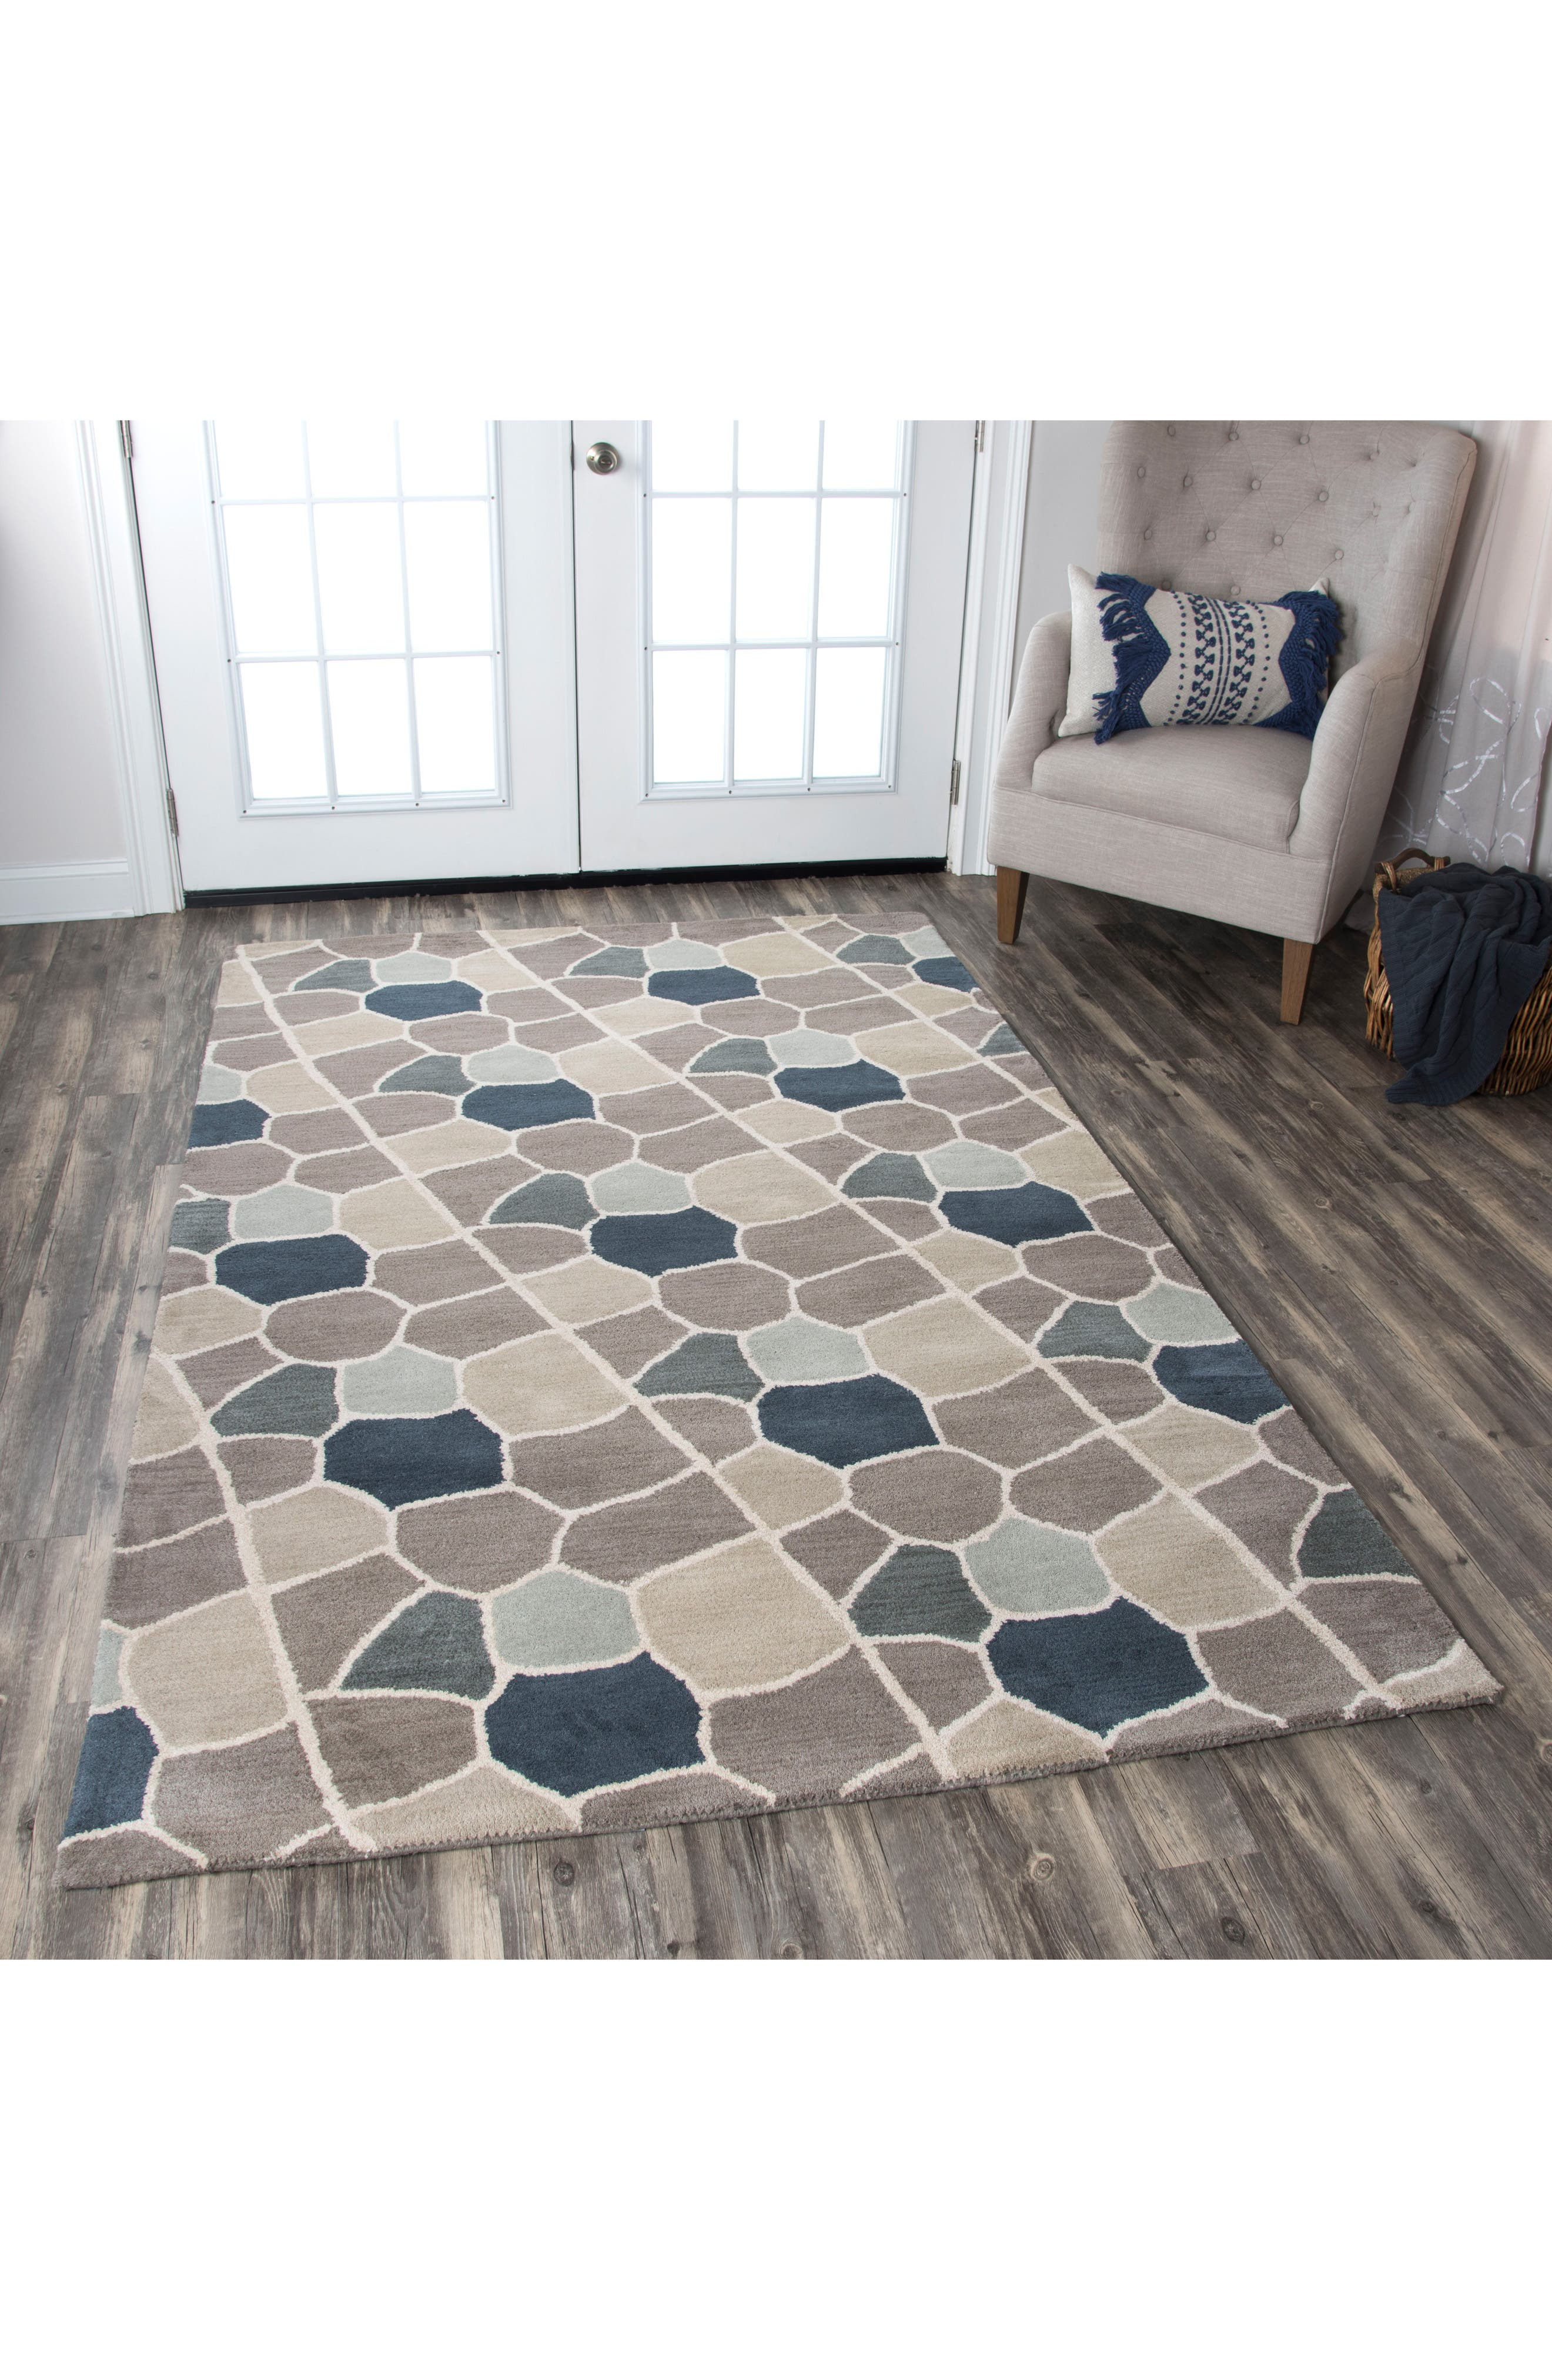 Cobble Geo Hand Tufted Wool Area Rug,                             Alternate thumbnail 2, color,                             020